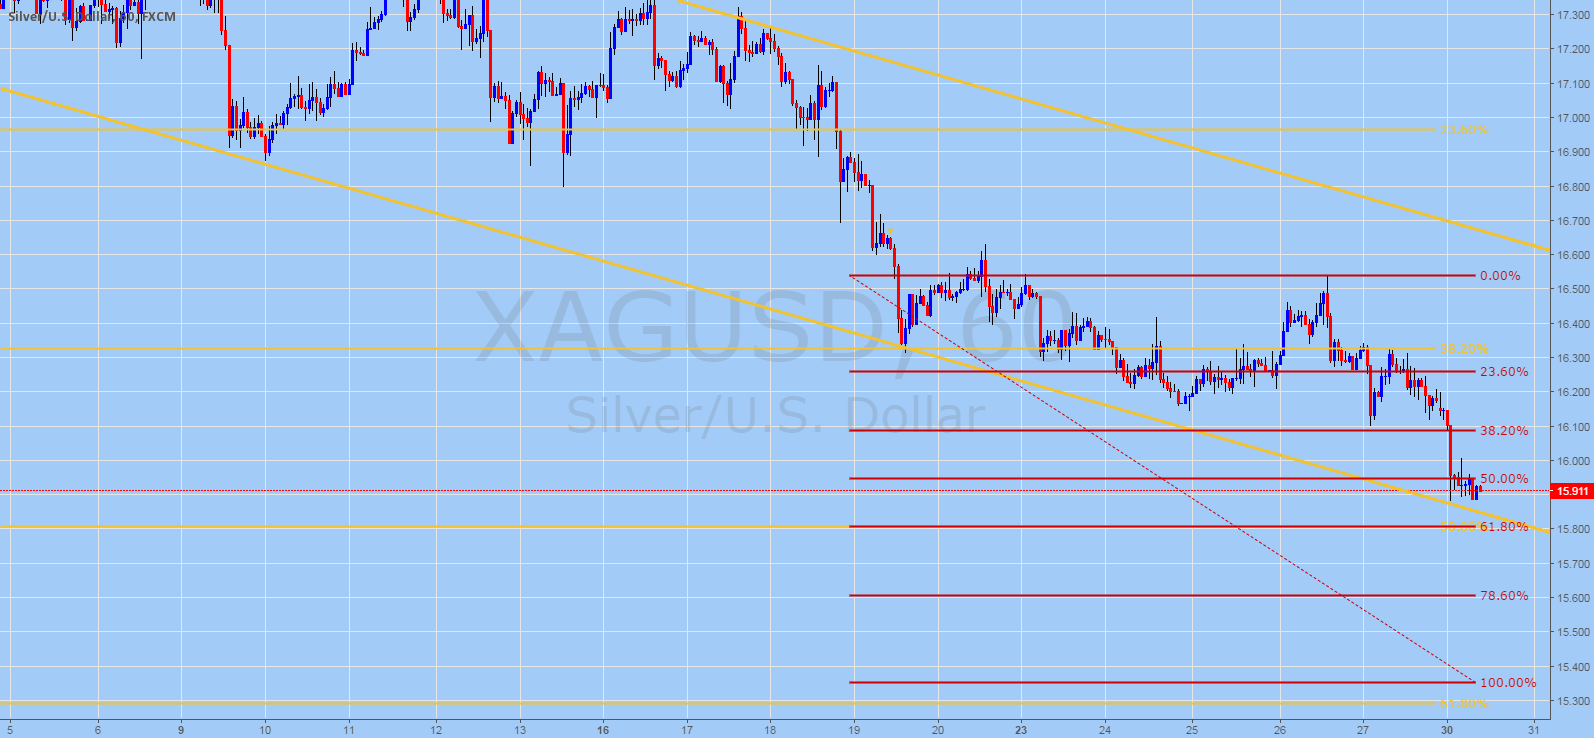 SILVER (XAGUSD) Technical Analysis for May 30, 2016